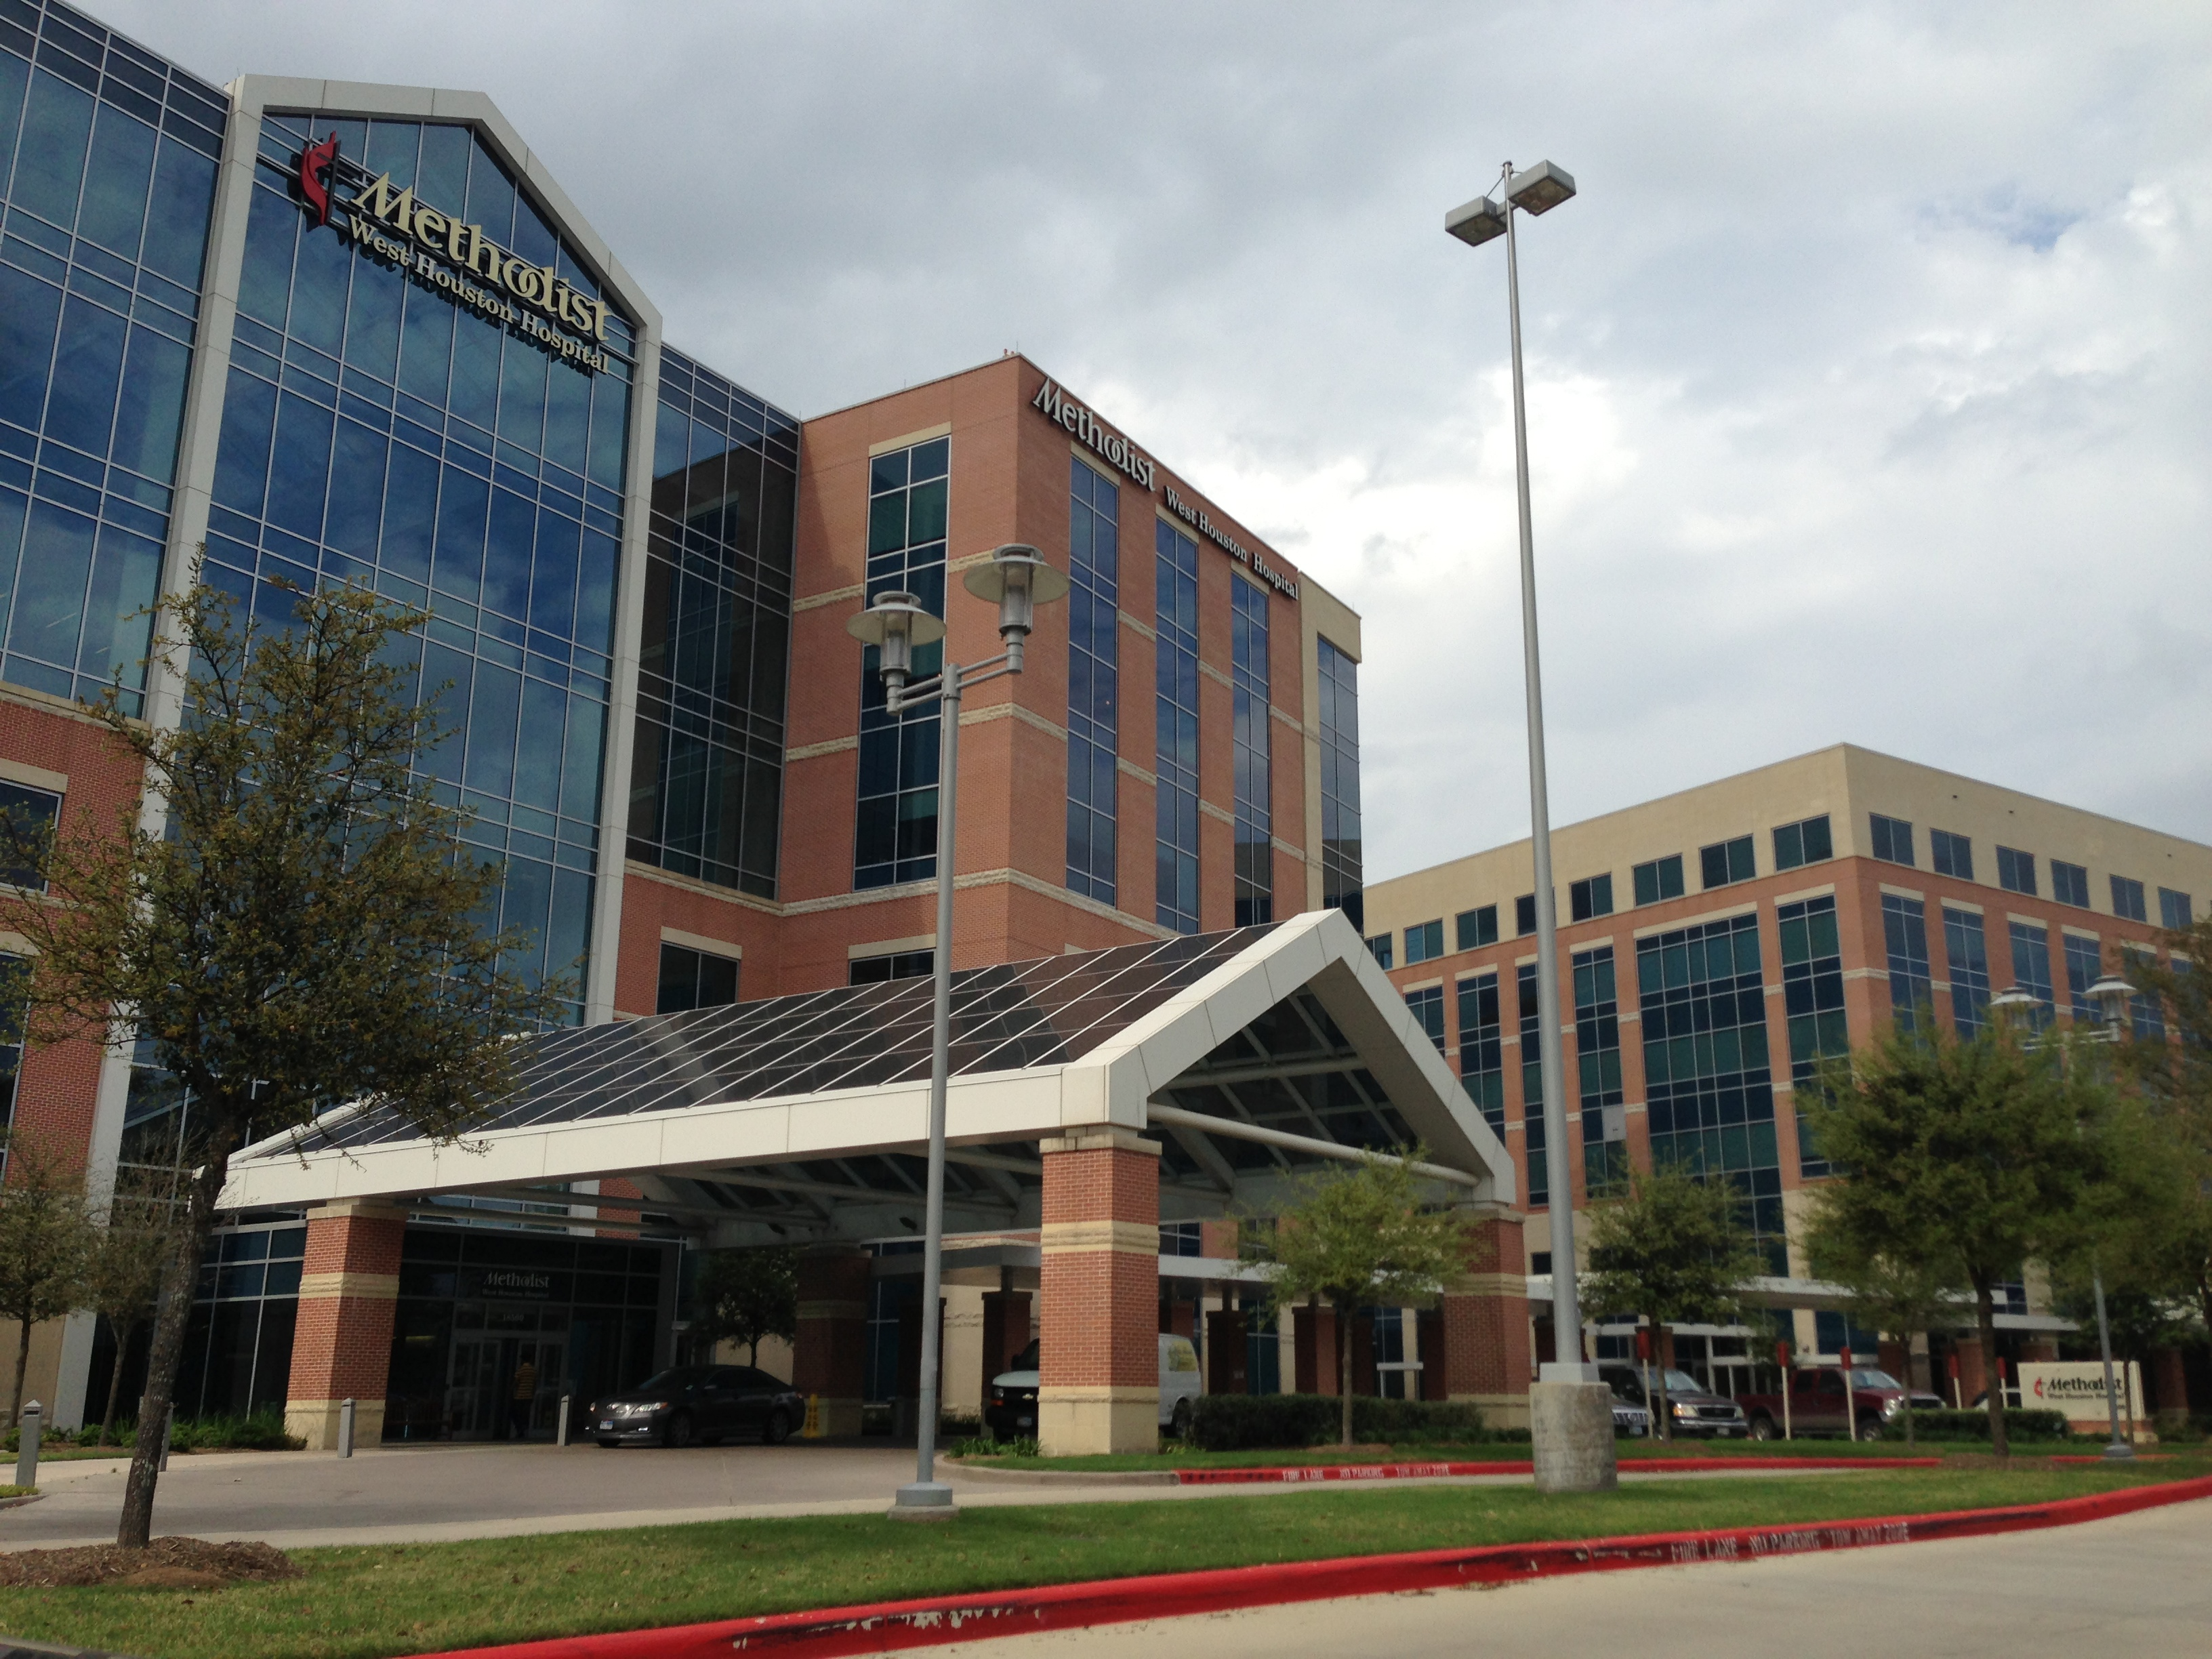 West Houston Hospital, MOB and Central Plant